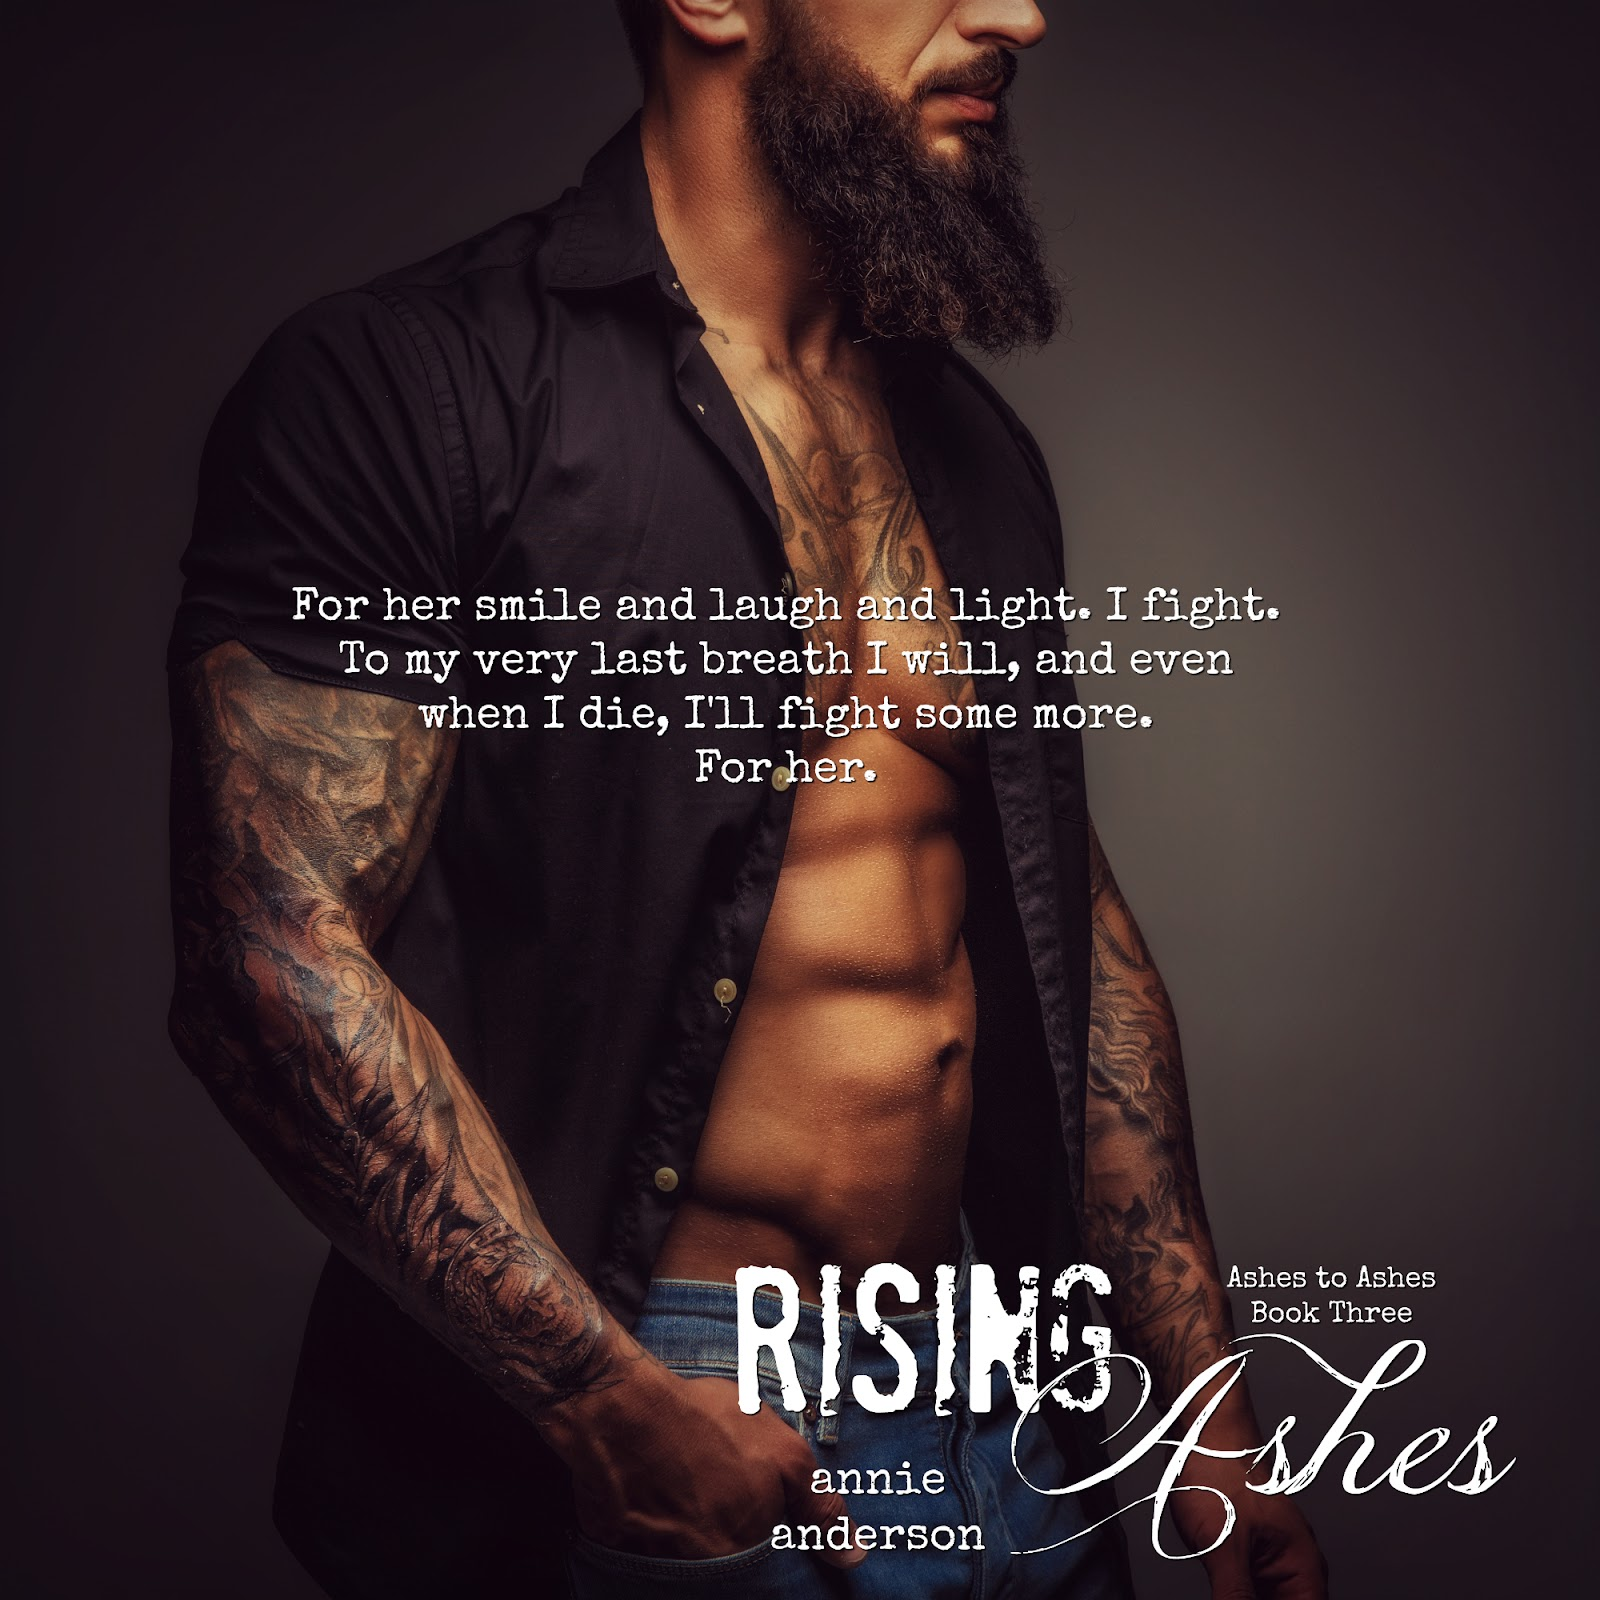 Rising Ashes - Fight Teaser.jpg